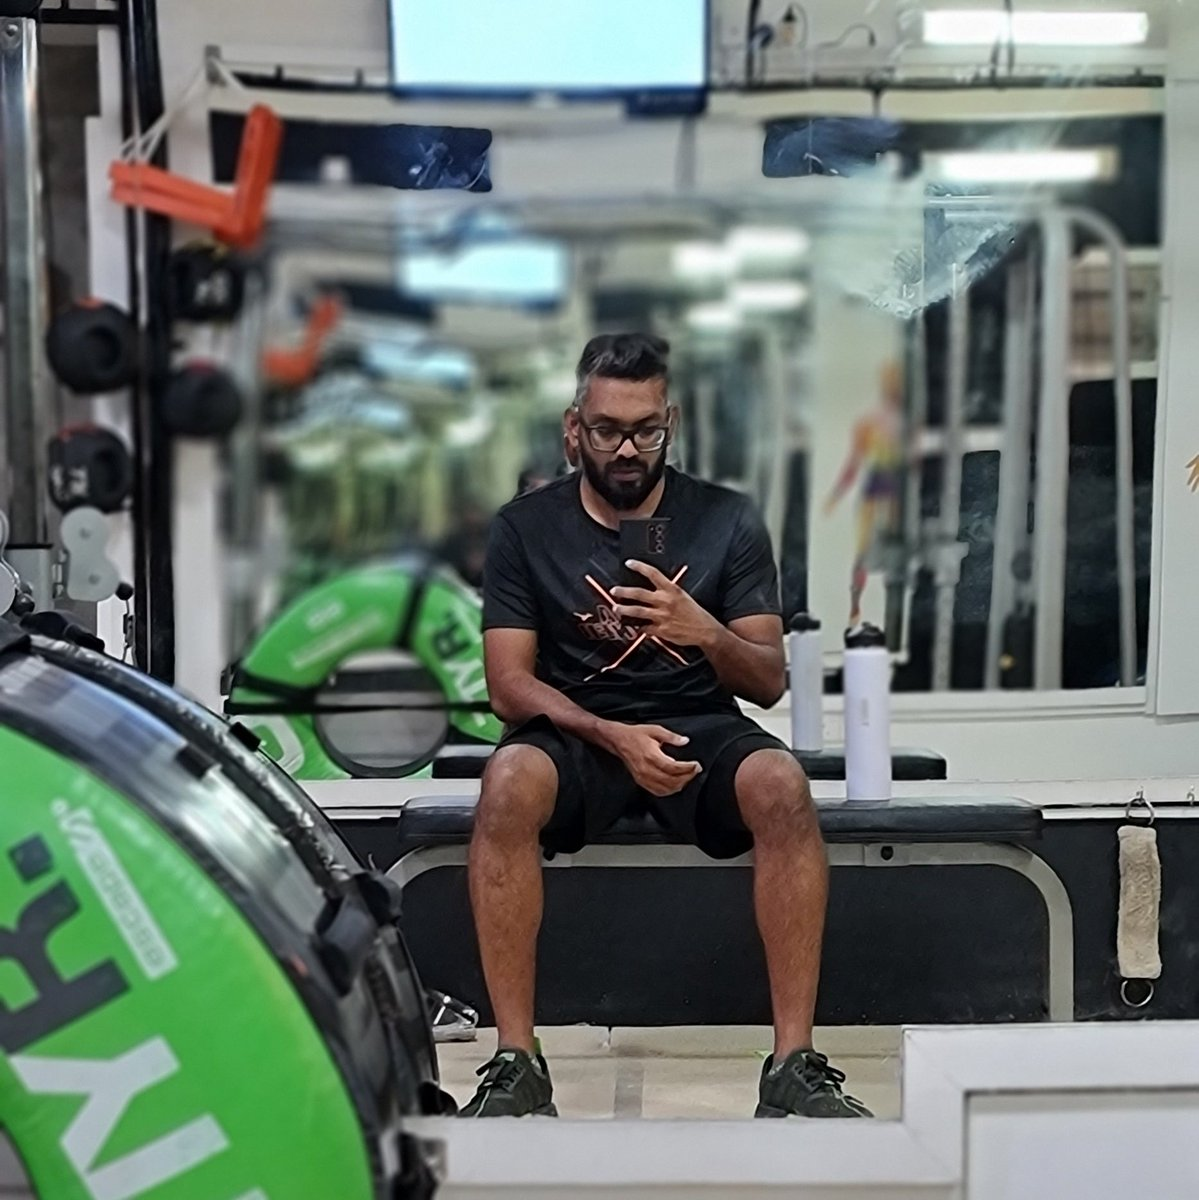 WORK OUT. EAT WELL. BE PATIENT. BODY WILL REWARD. . . . . #gym #workout #2021challenge #glowfit #flasks #weartoddy #amldivianstory #drinktoddy @glowfitsquad @hasan_haleem